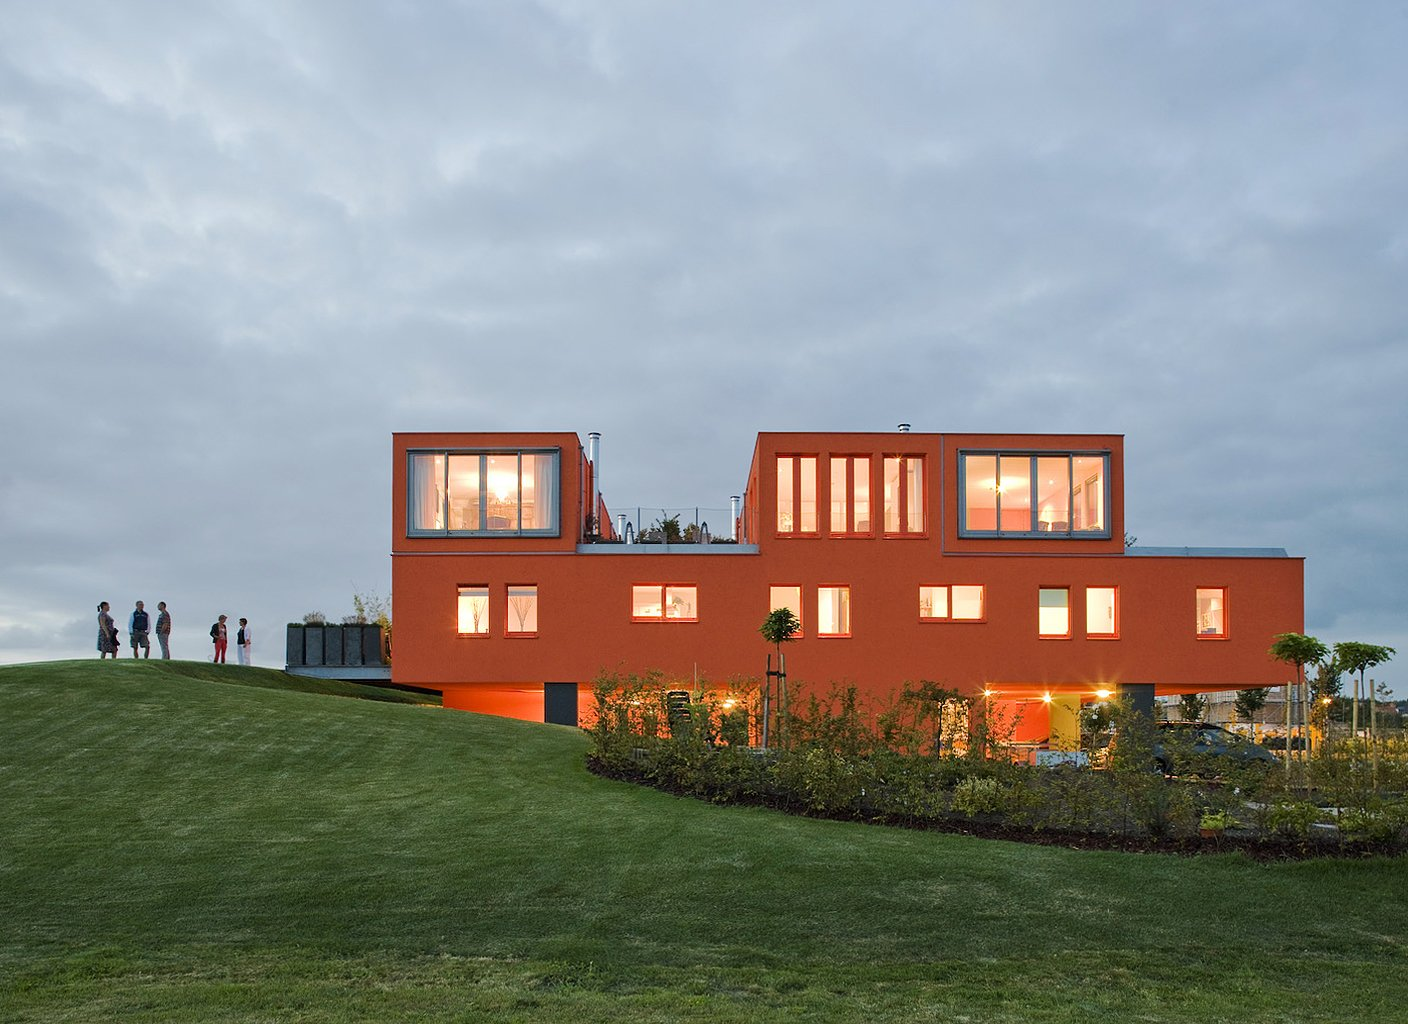 Villa Van Vijven cuts a truly remarkable figure, a striking orange figure on the otherwise flat green landscape. Tagged: Exterior and House.  16 Funky Facades by Andrea Smith from Modern Communal Living in the Netherlands